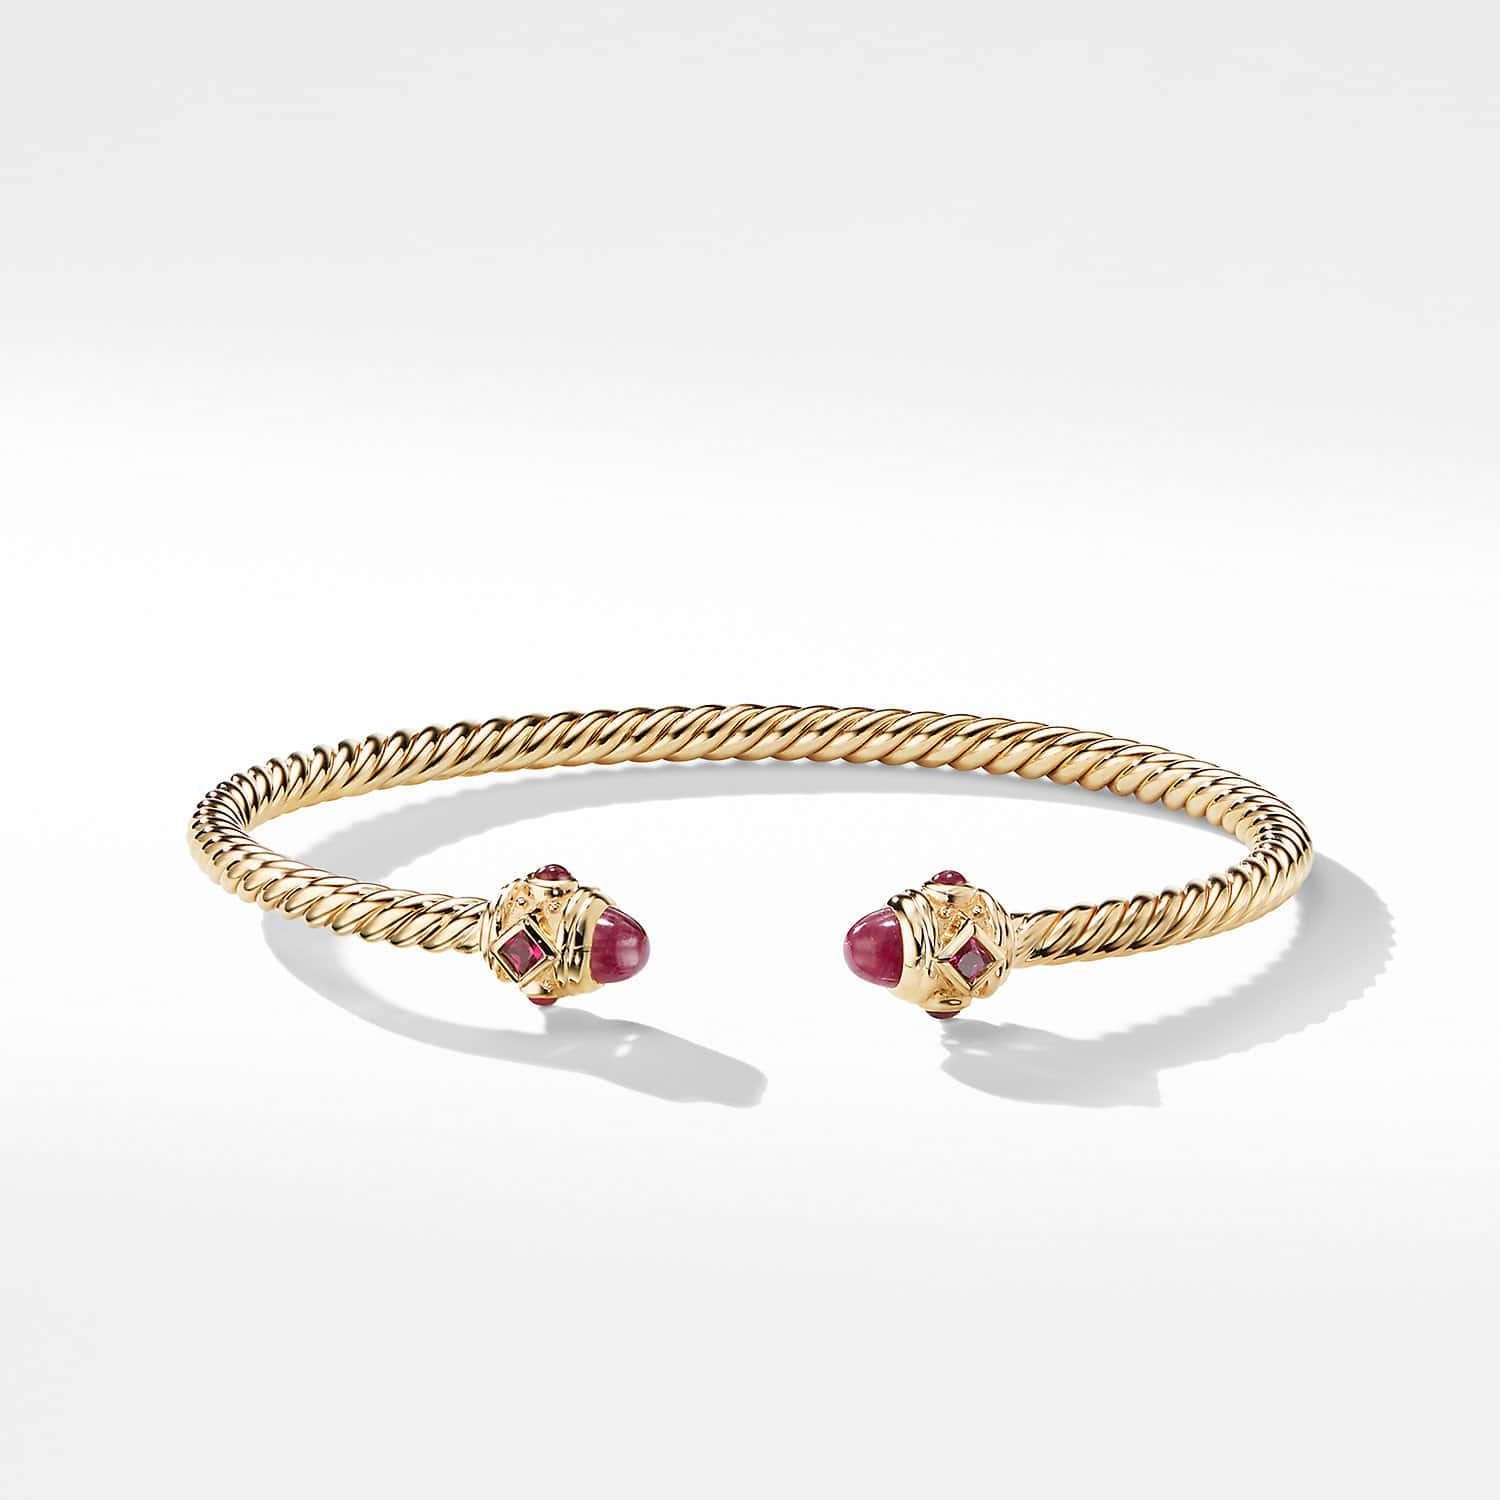 0bcc0e25f Renaissance Bracelet with Rubies in 18K Gold, 3.5mm Product Image